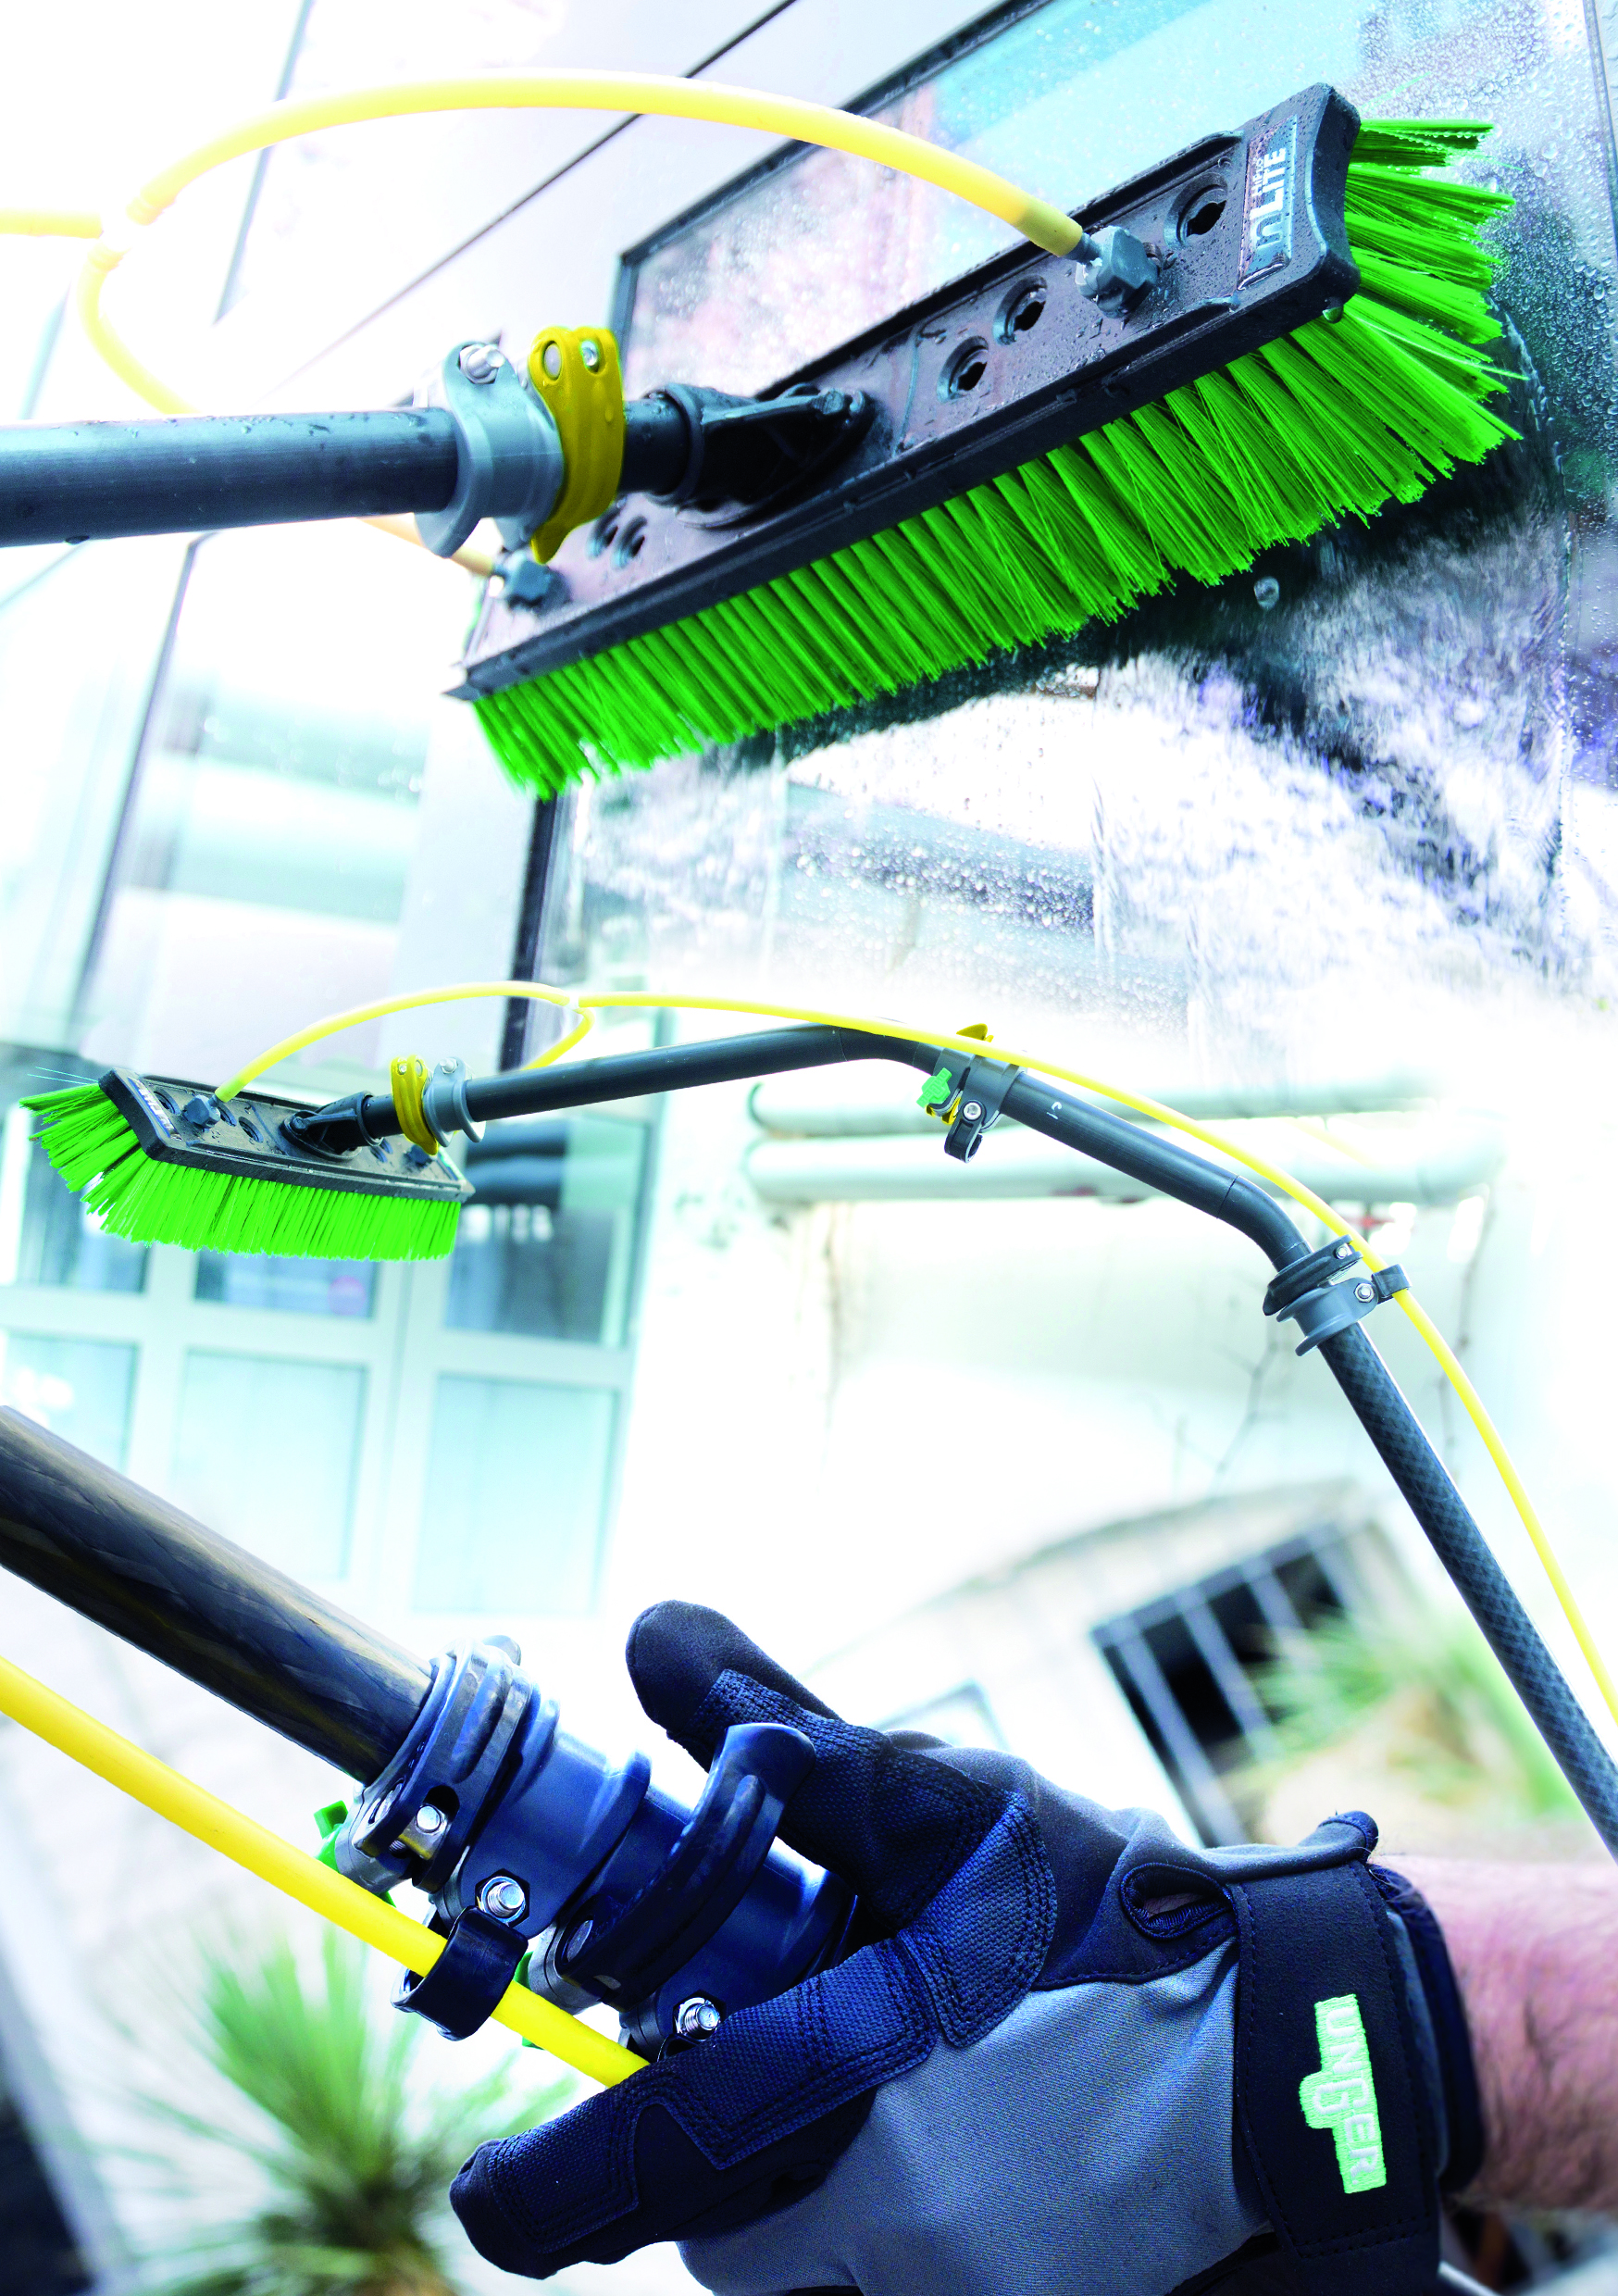 Latest images of the new Unger HiFlo nLite – Window Cleaning